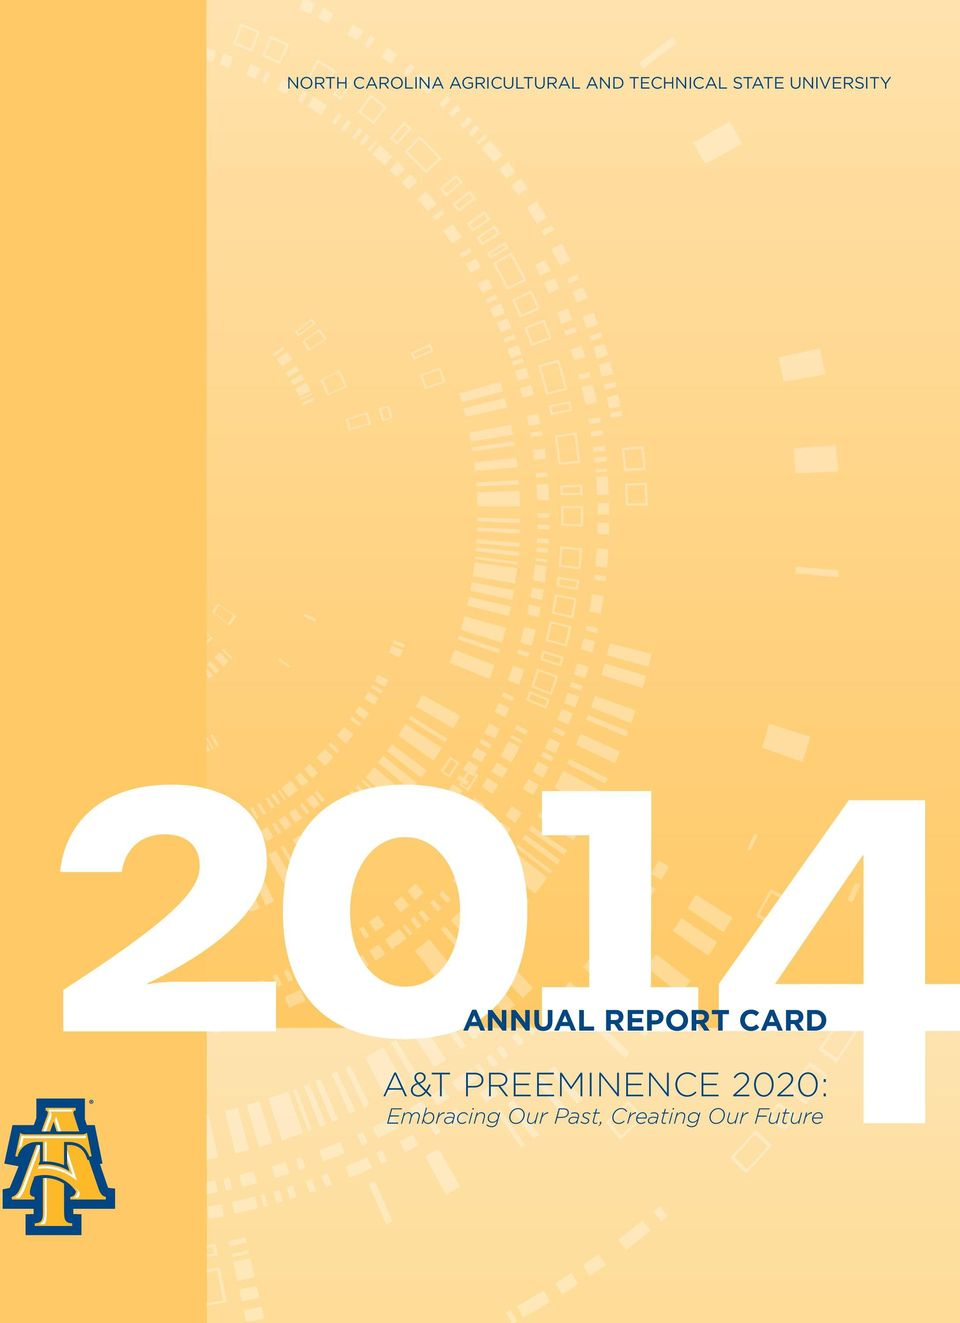 Report Card A&T Preeminence 2020: